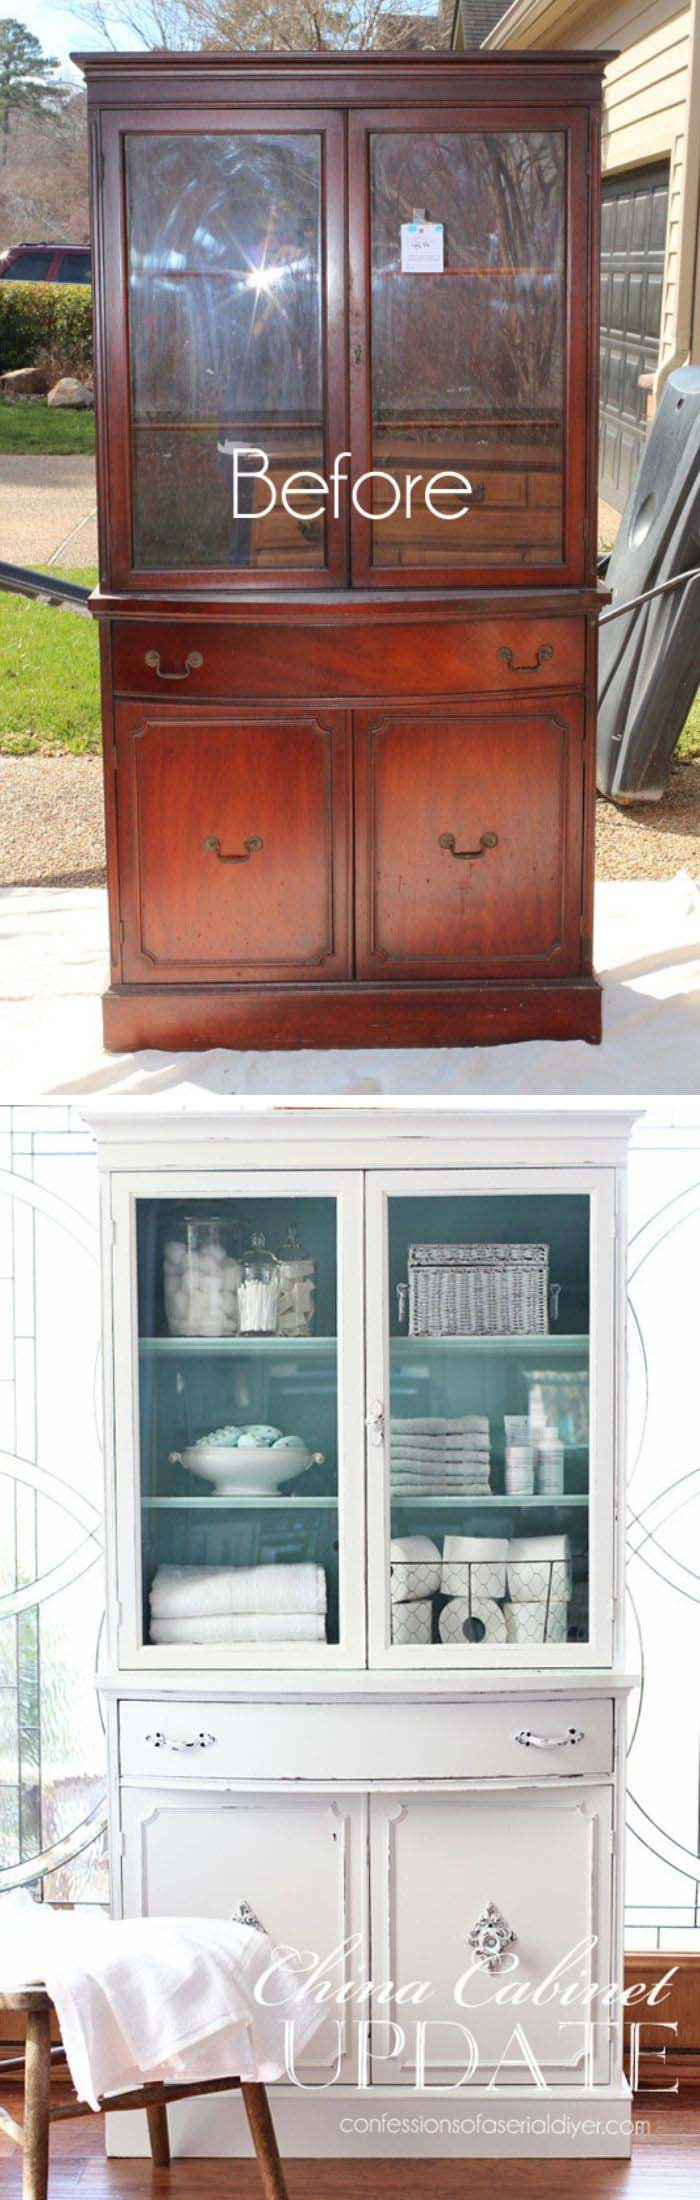 China Cabinet Makeover #furniture #makeover #decorhomeideas